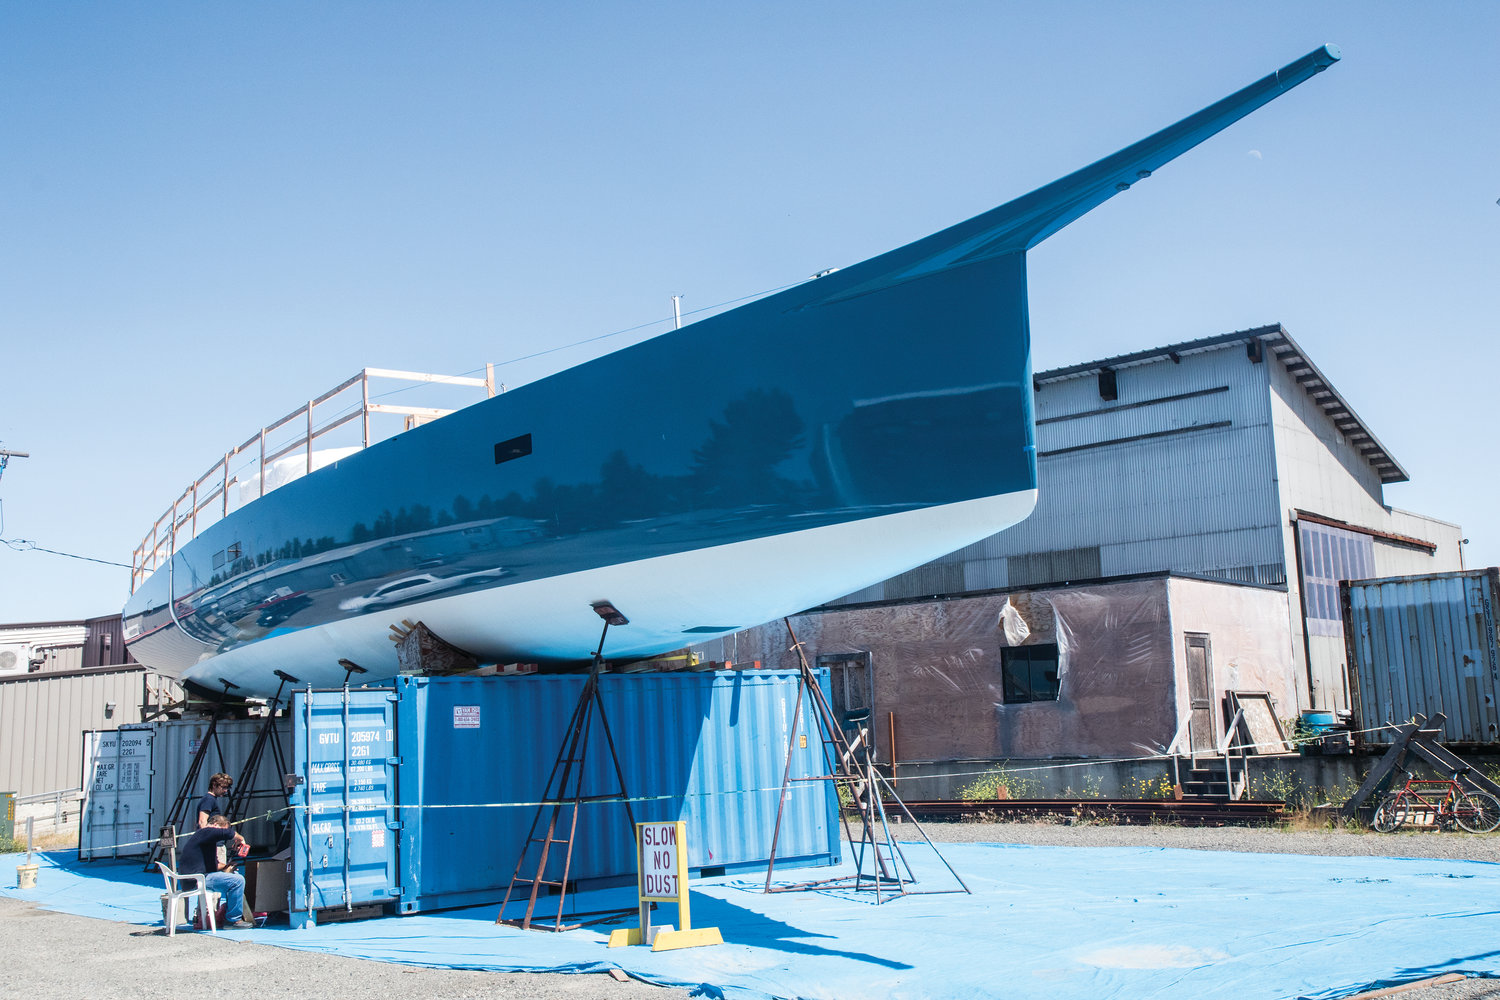 The 88-foot T4 is a racer/cruiser with yacht fit and finish below, and high tech racing rigging above deck. The project is nearing completion at the Port Townsend Boat Haven.